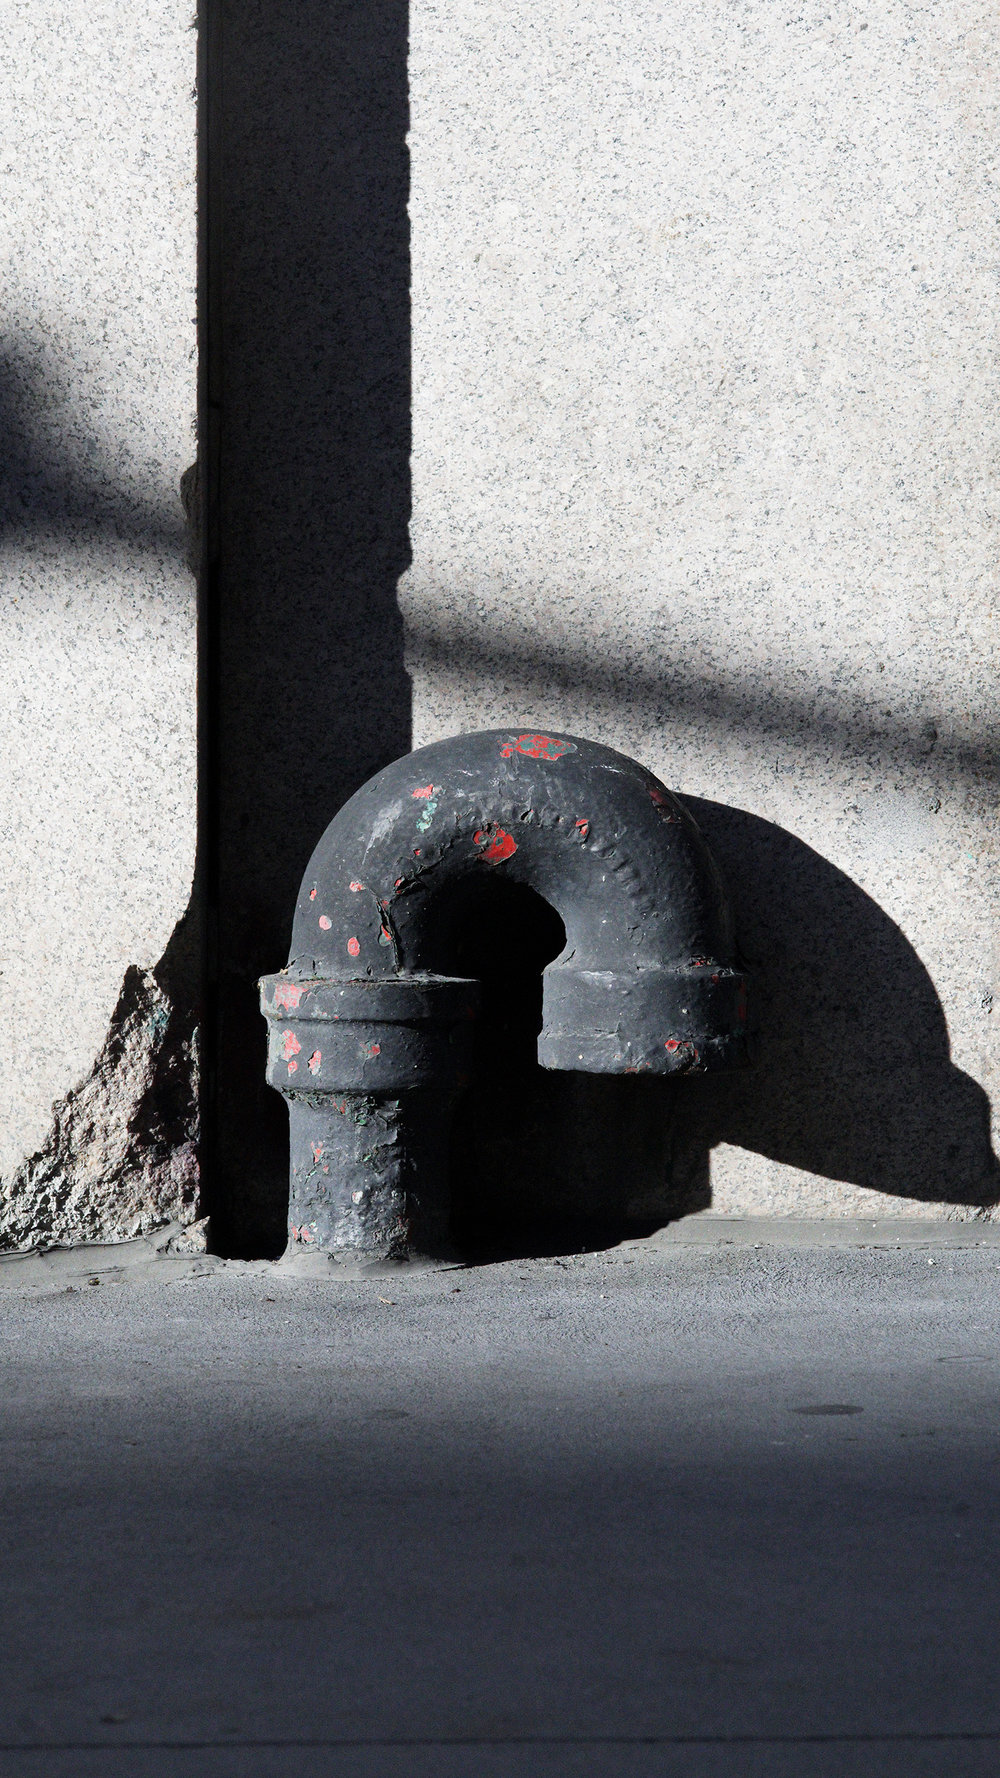 Standpipe, NYC, 2016